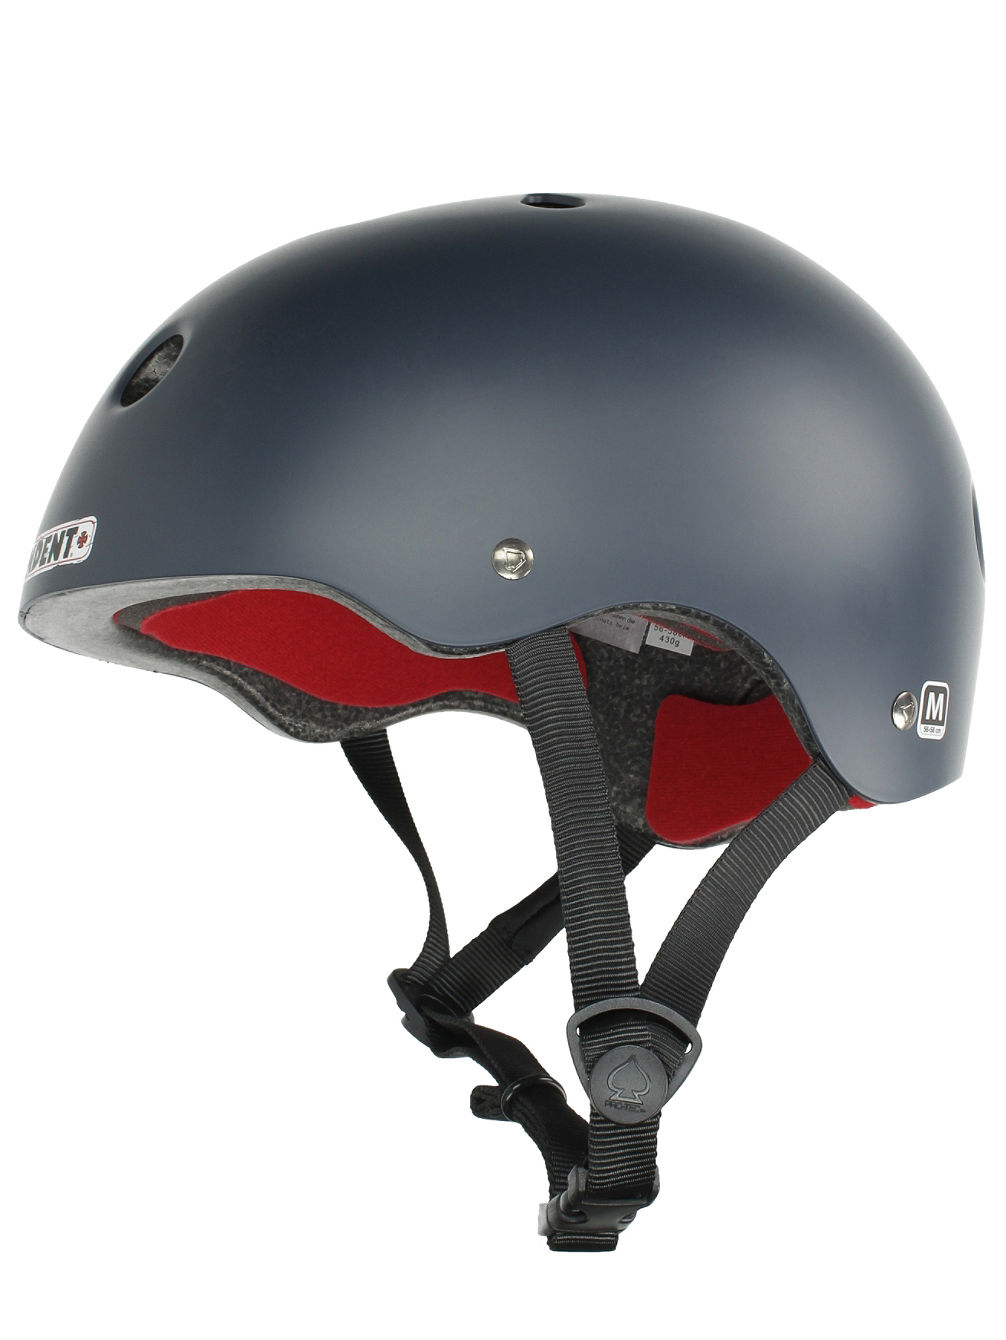 The Classic Independet Helmet